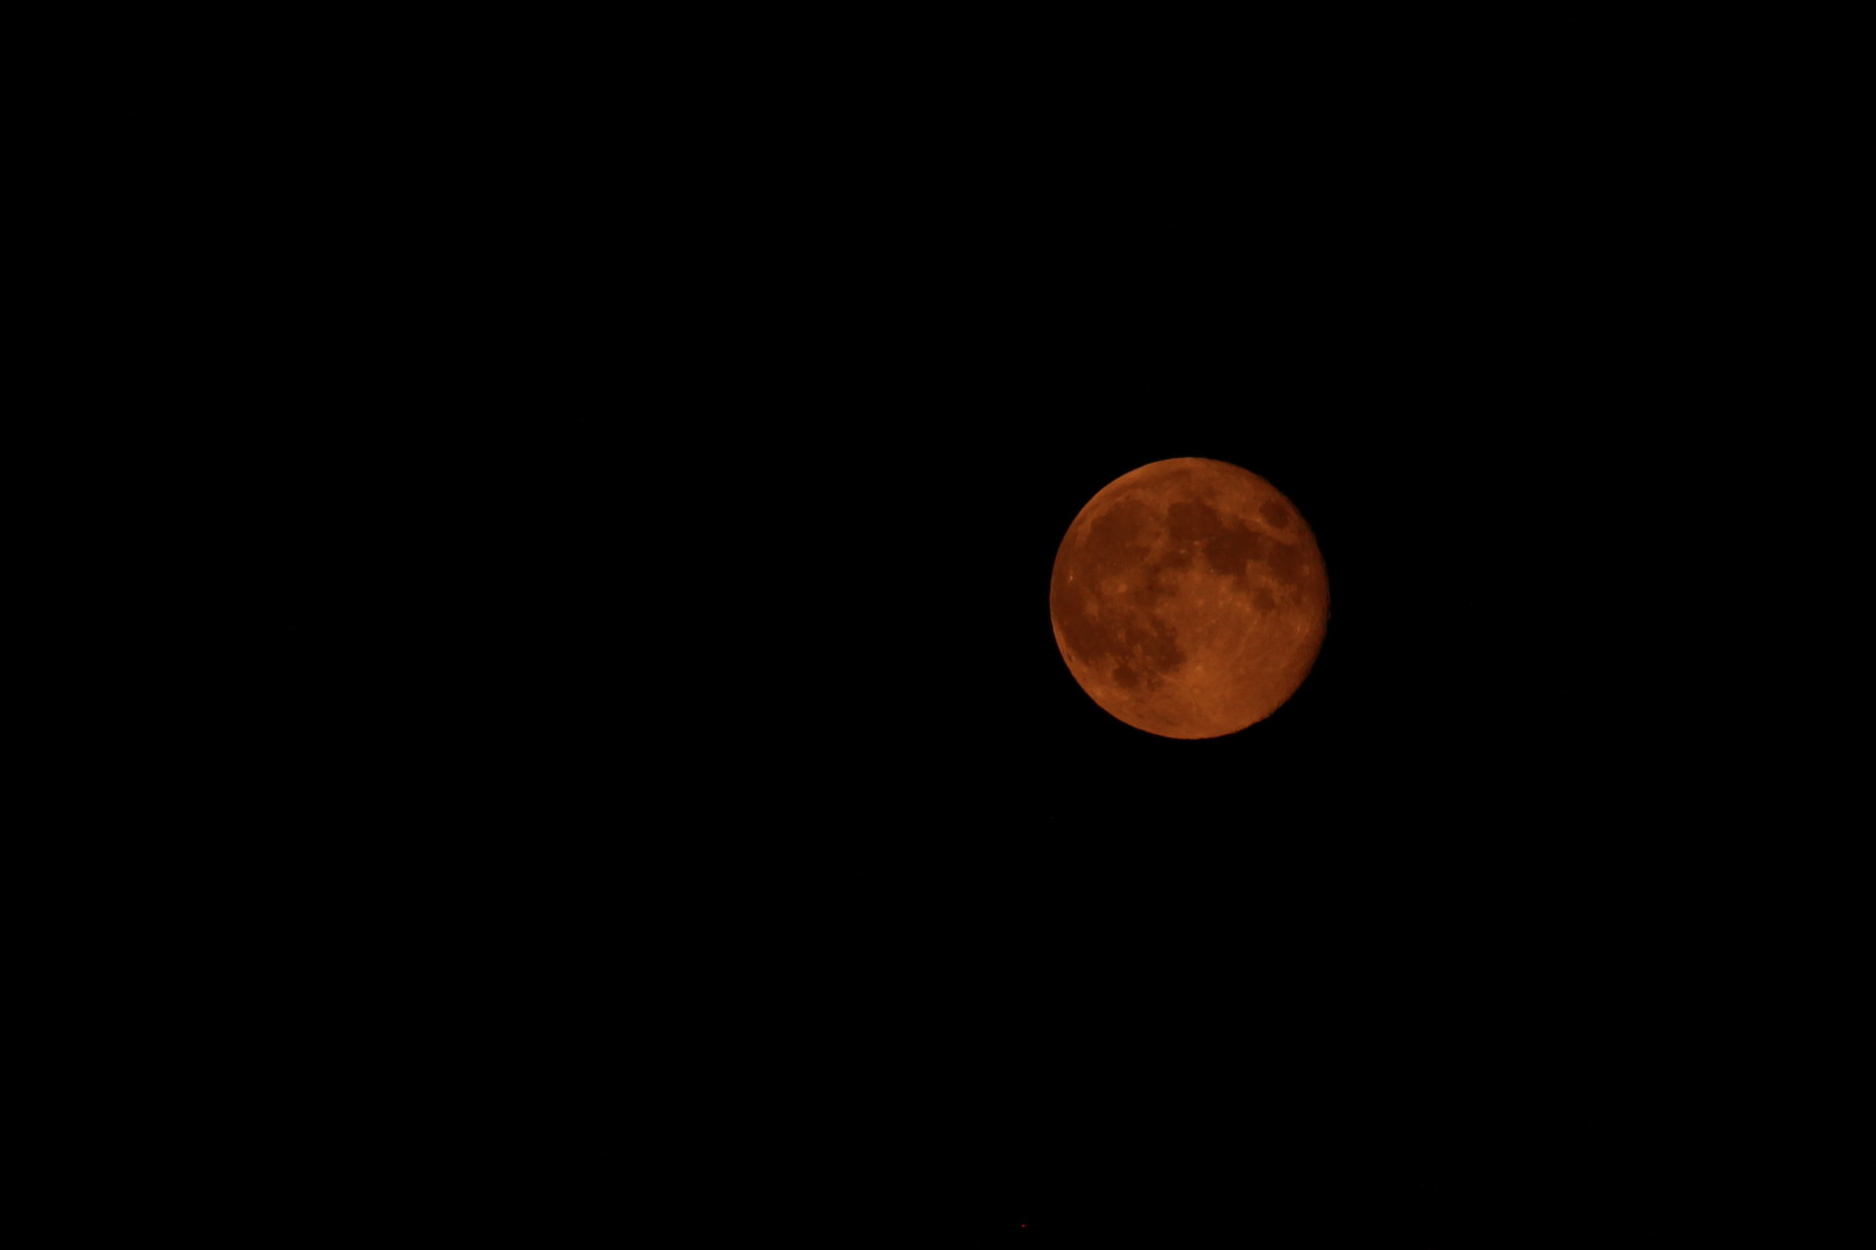 The moon appears reddish orange during a lunar eclipse.